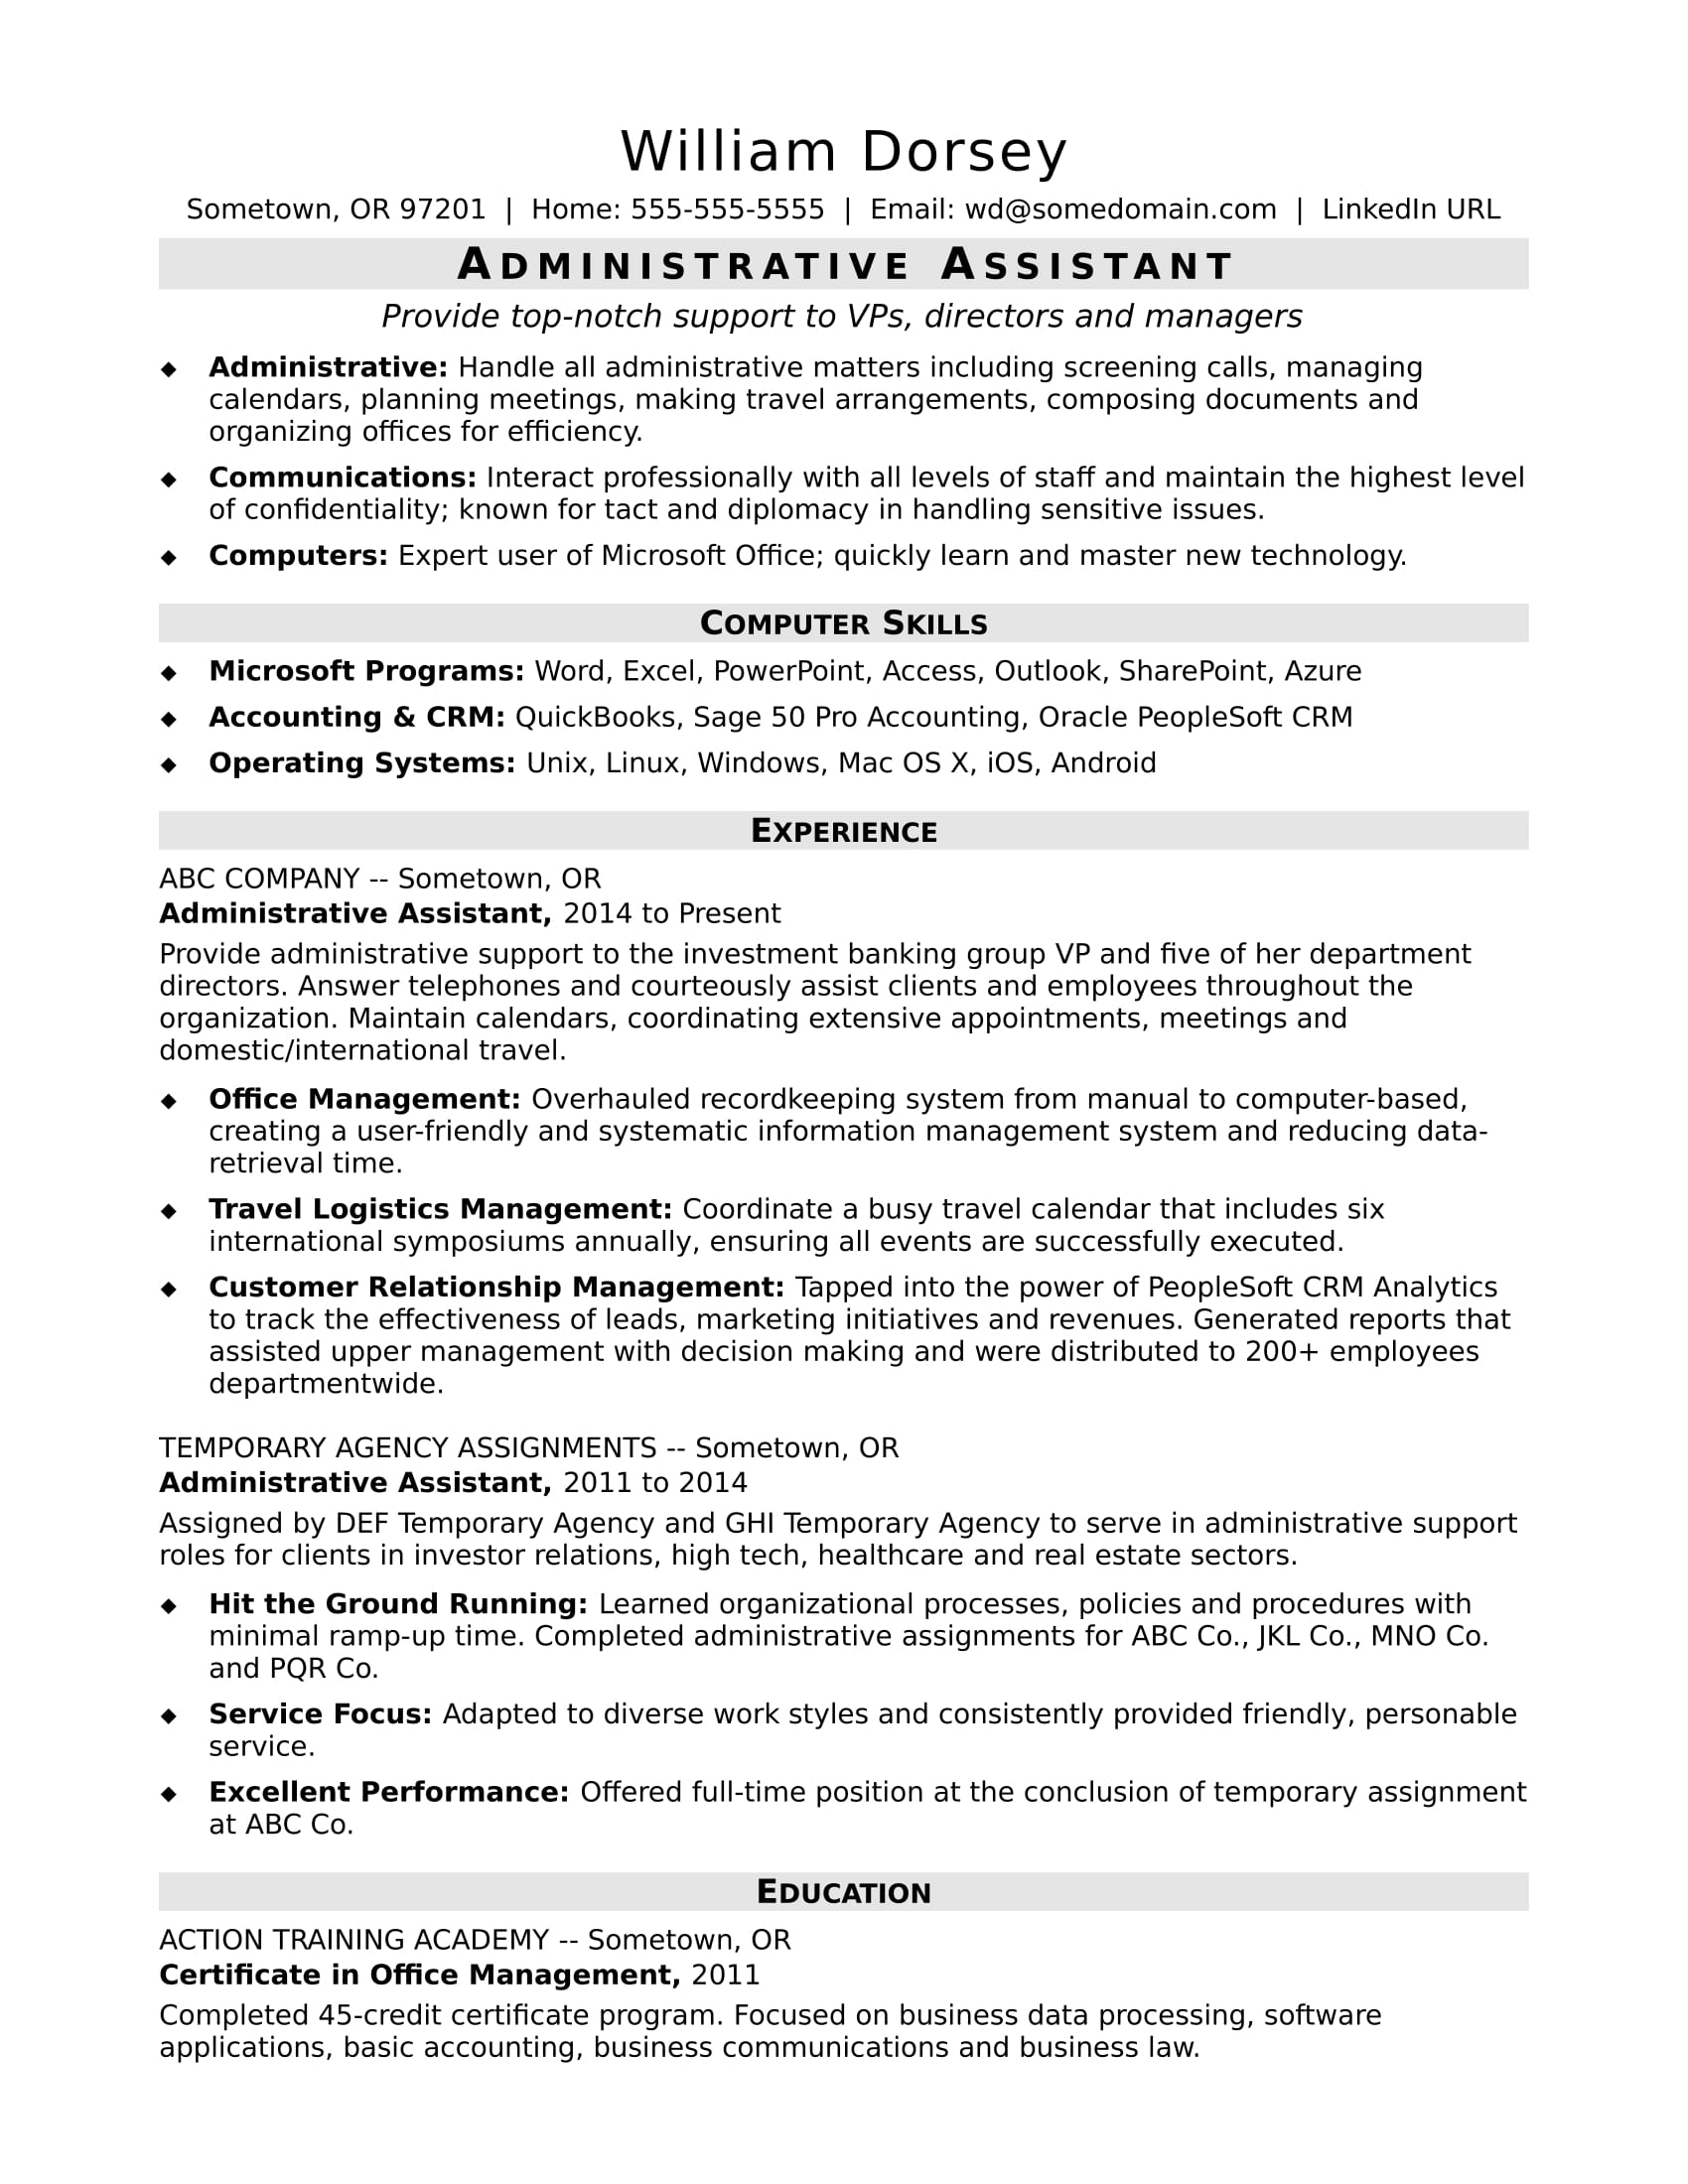 Midlevel Administrative Assistant Resume Sample  MonsterCom